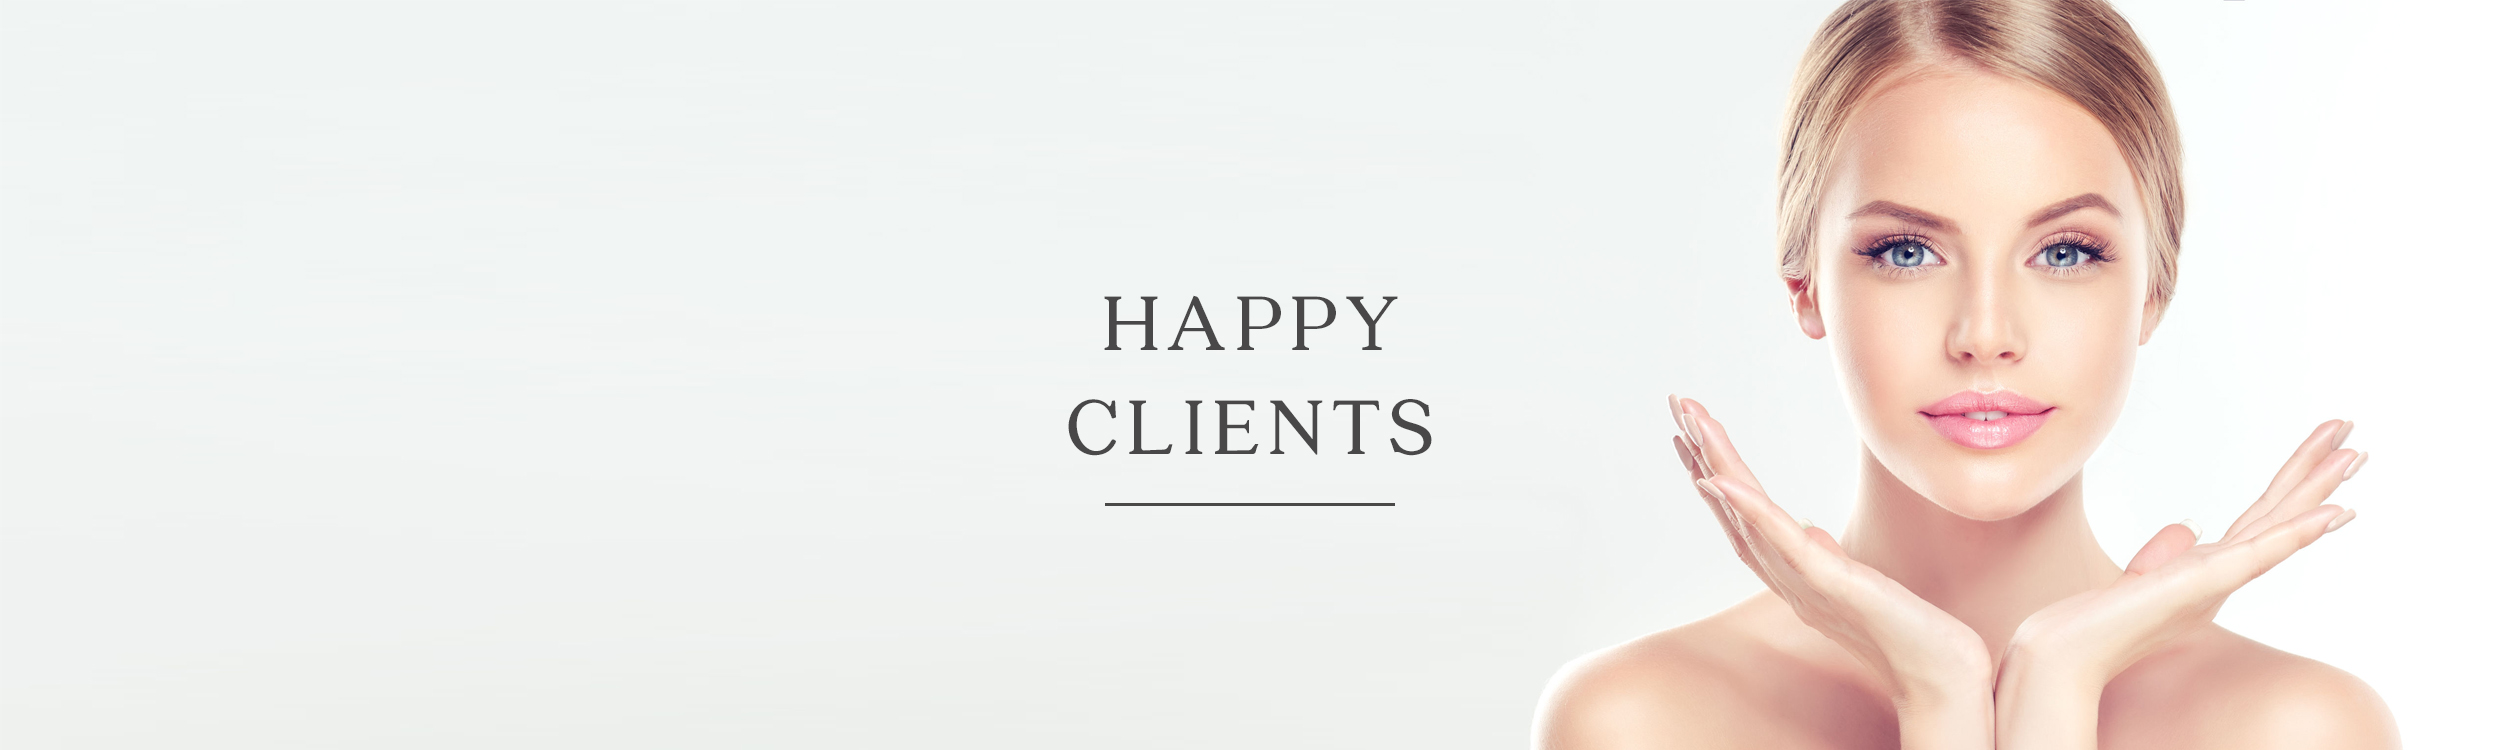 The Clinic for Medical Aesthetics - Happy Clients Banner.jpg